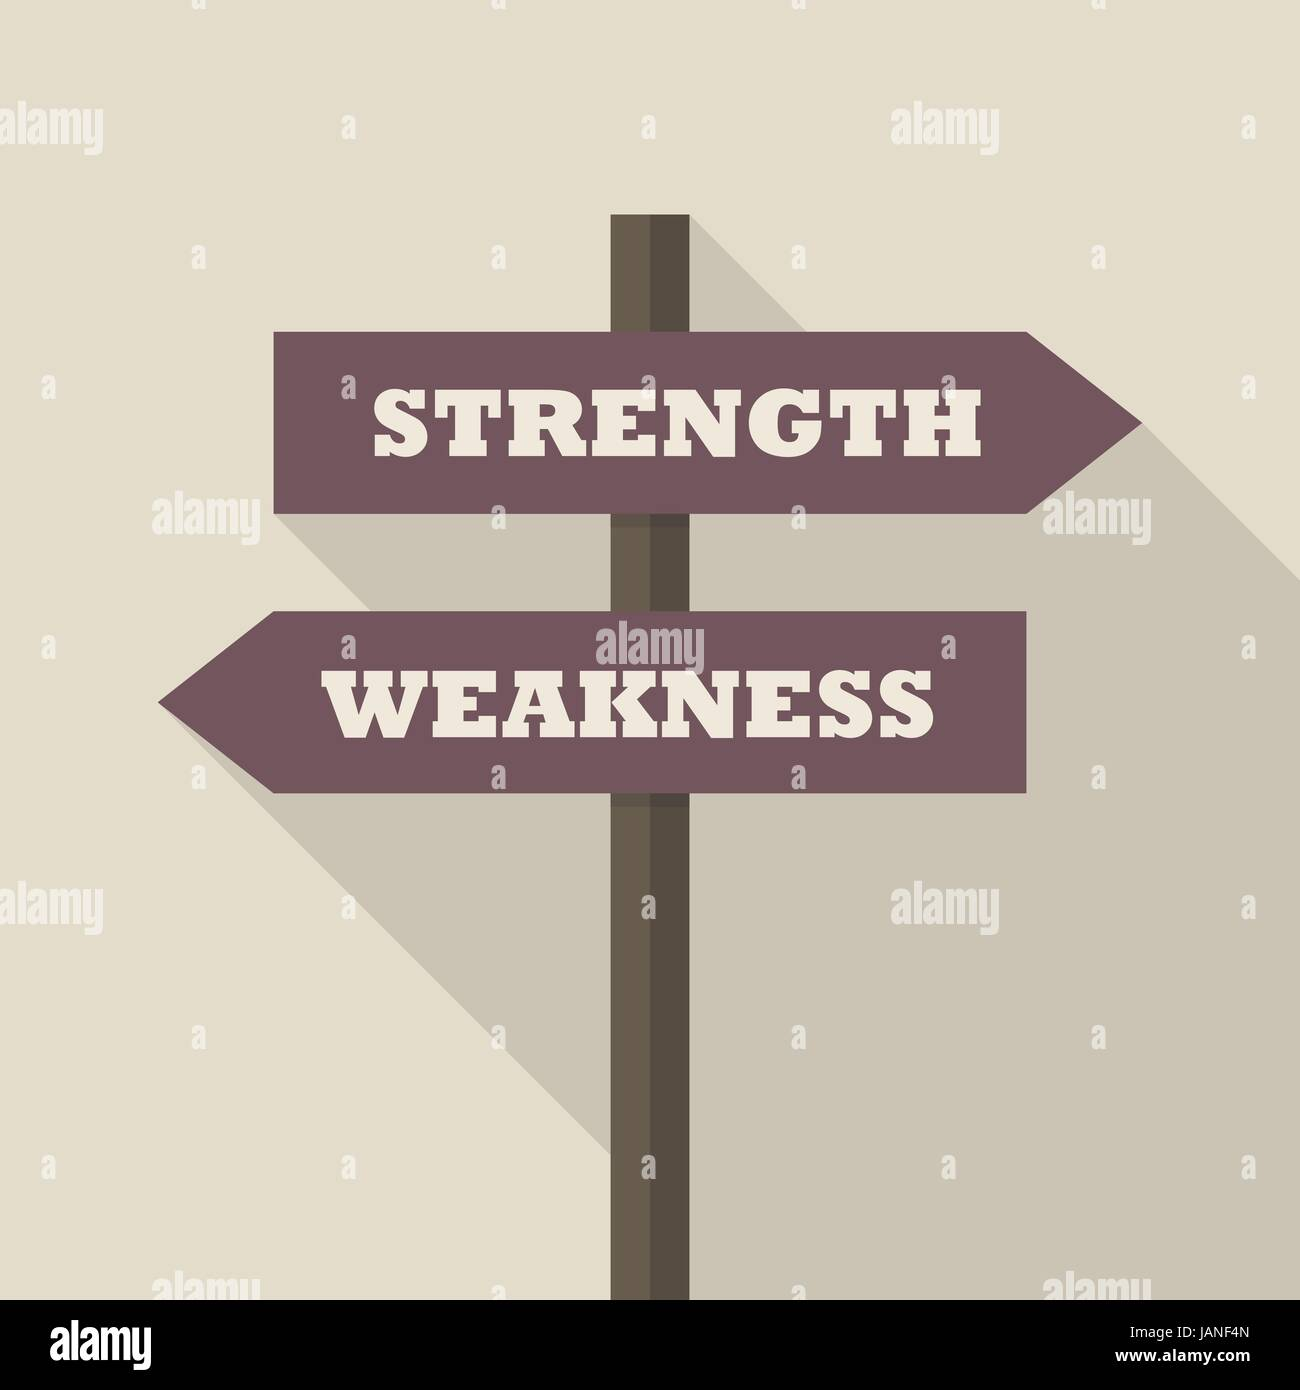 Strength or Weakness directions on a signpost. vector illustration - Stock Vector